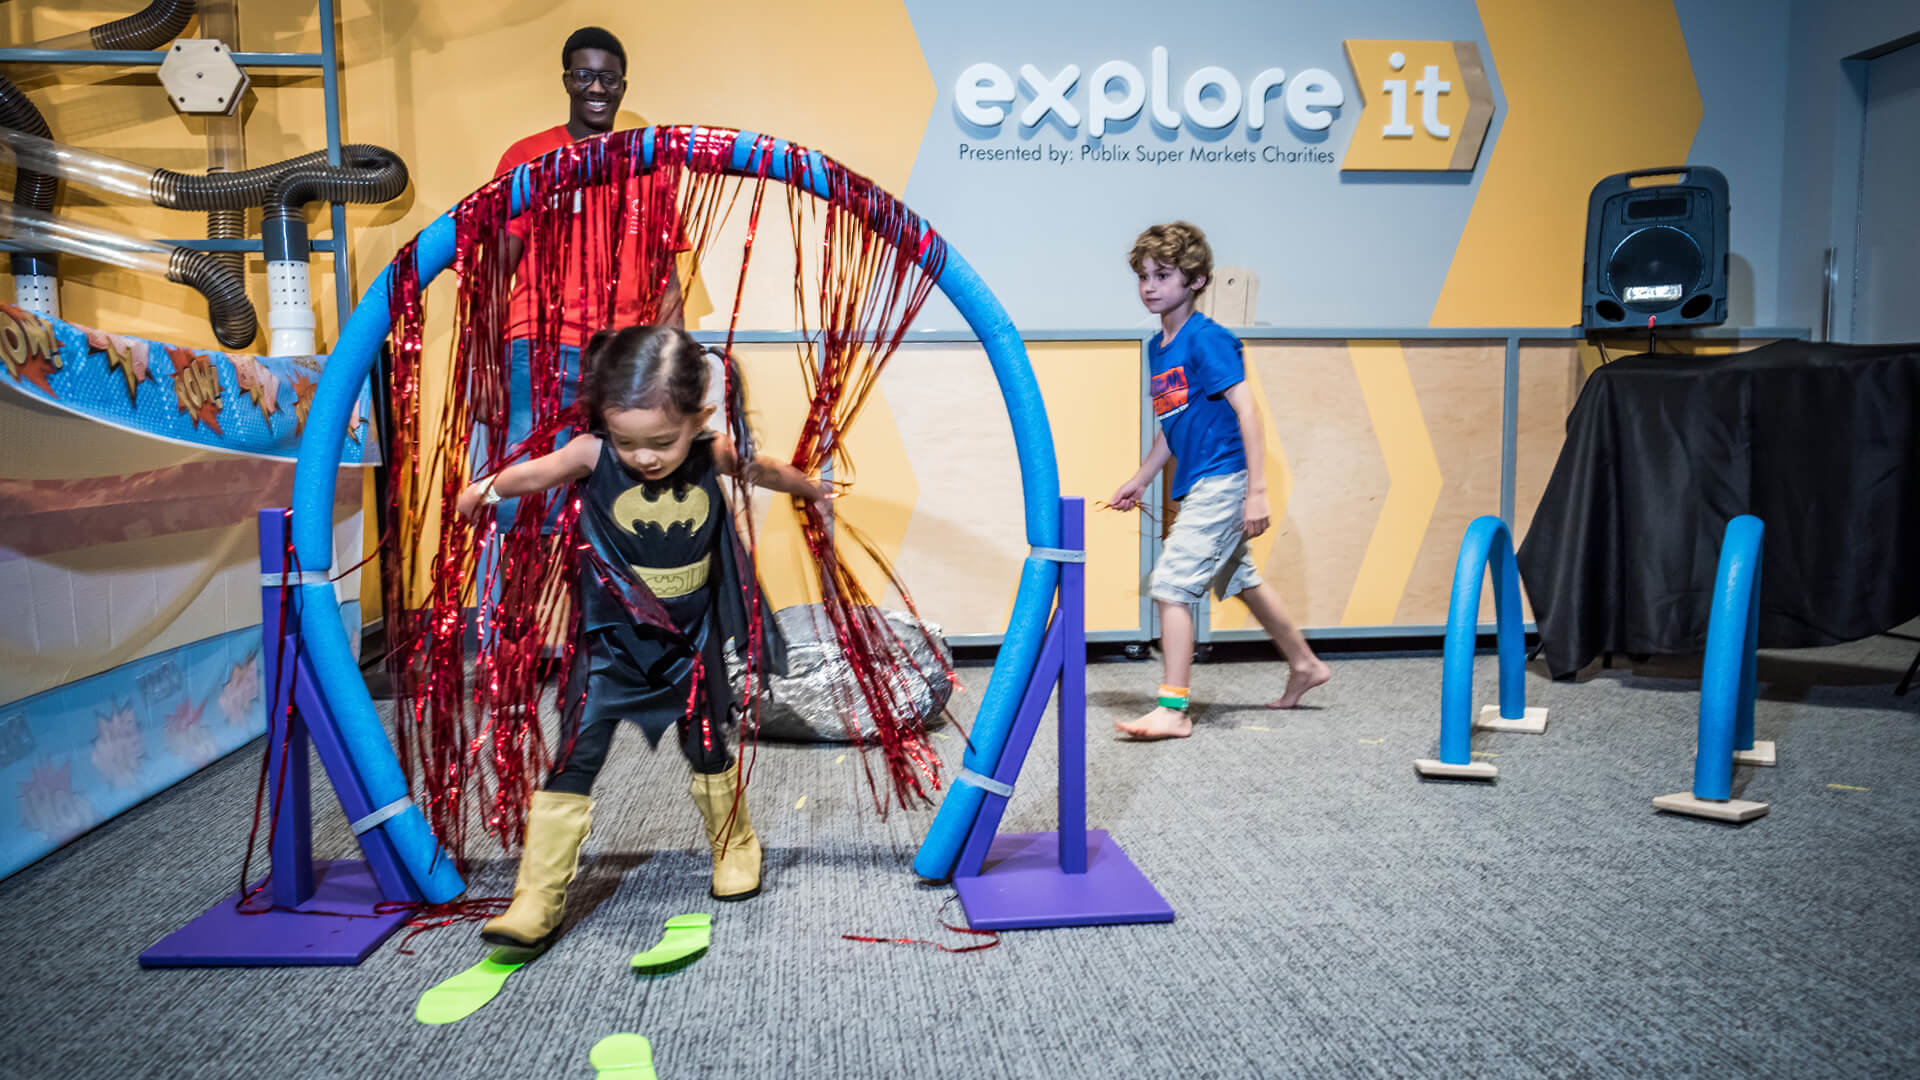 Child in Batgirl costume navigating obstacle course at Science Center